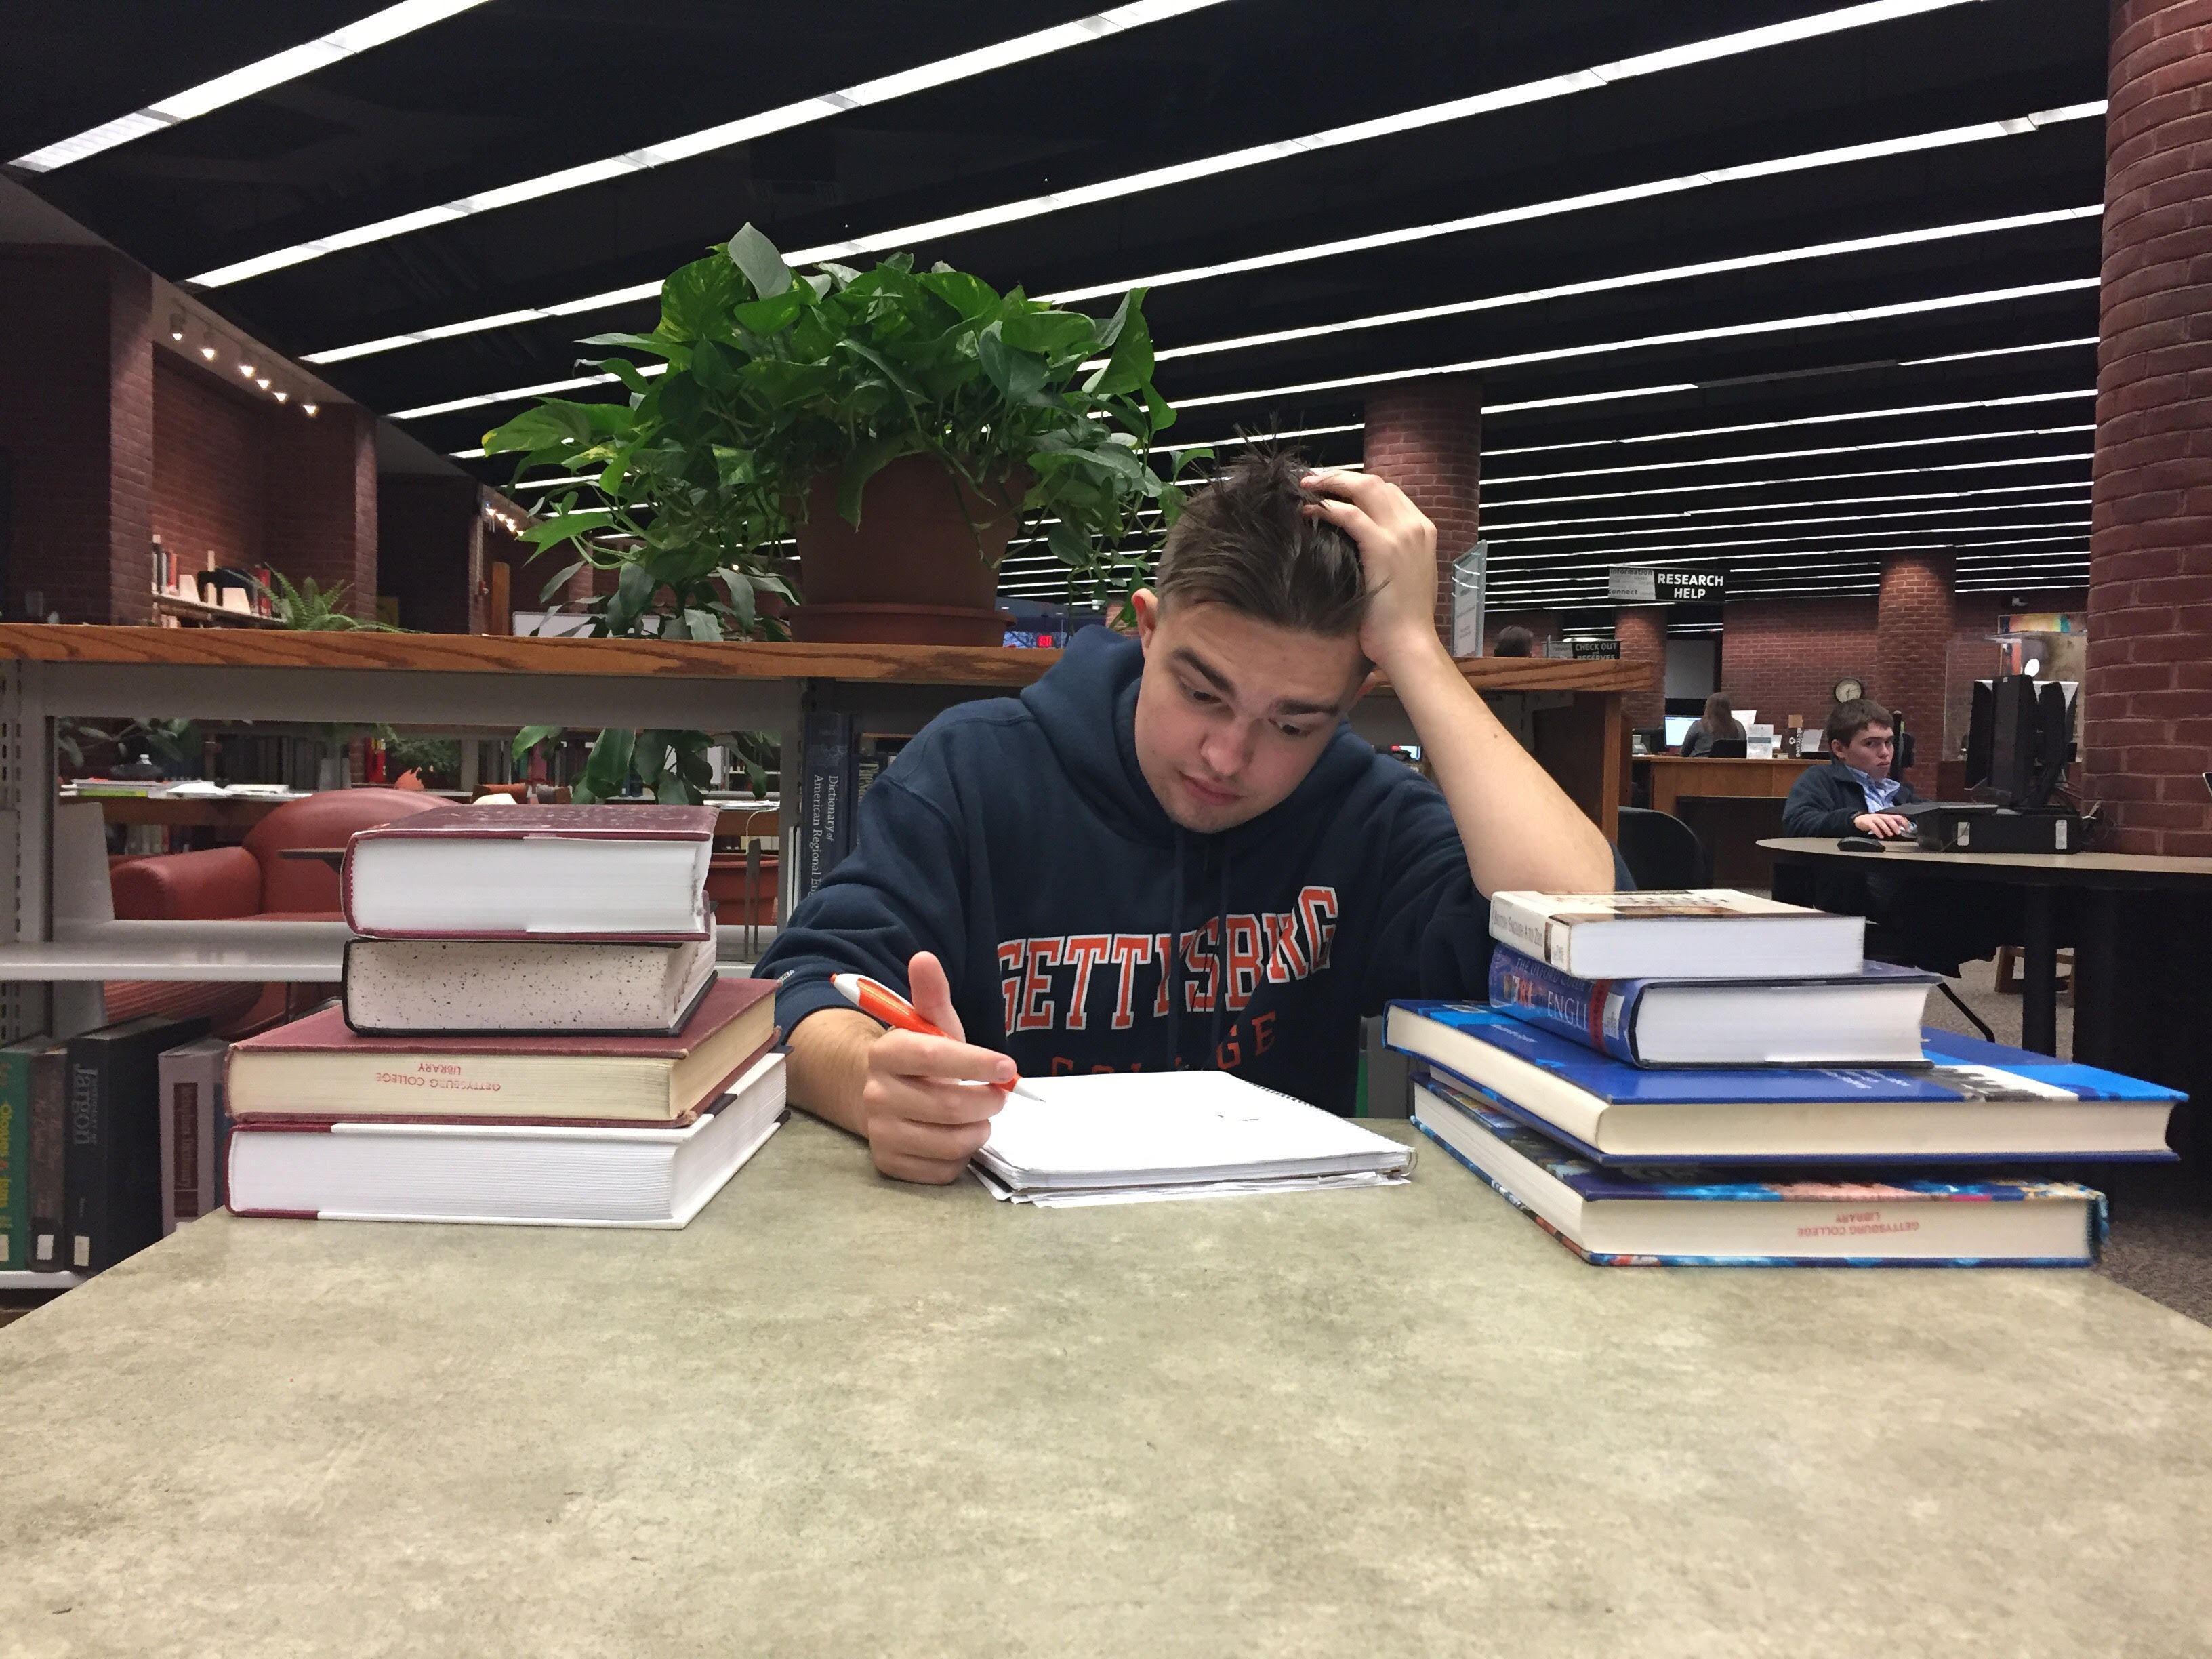 Max Glover '21 with a stack of textbooks in Musselman Library (Photo Gauri Mangala / The Gettysburgian)